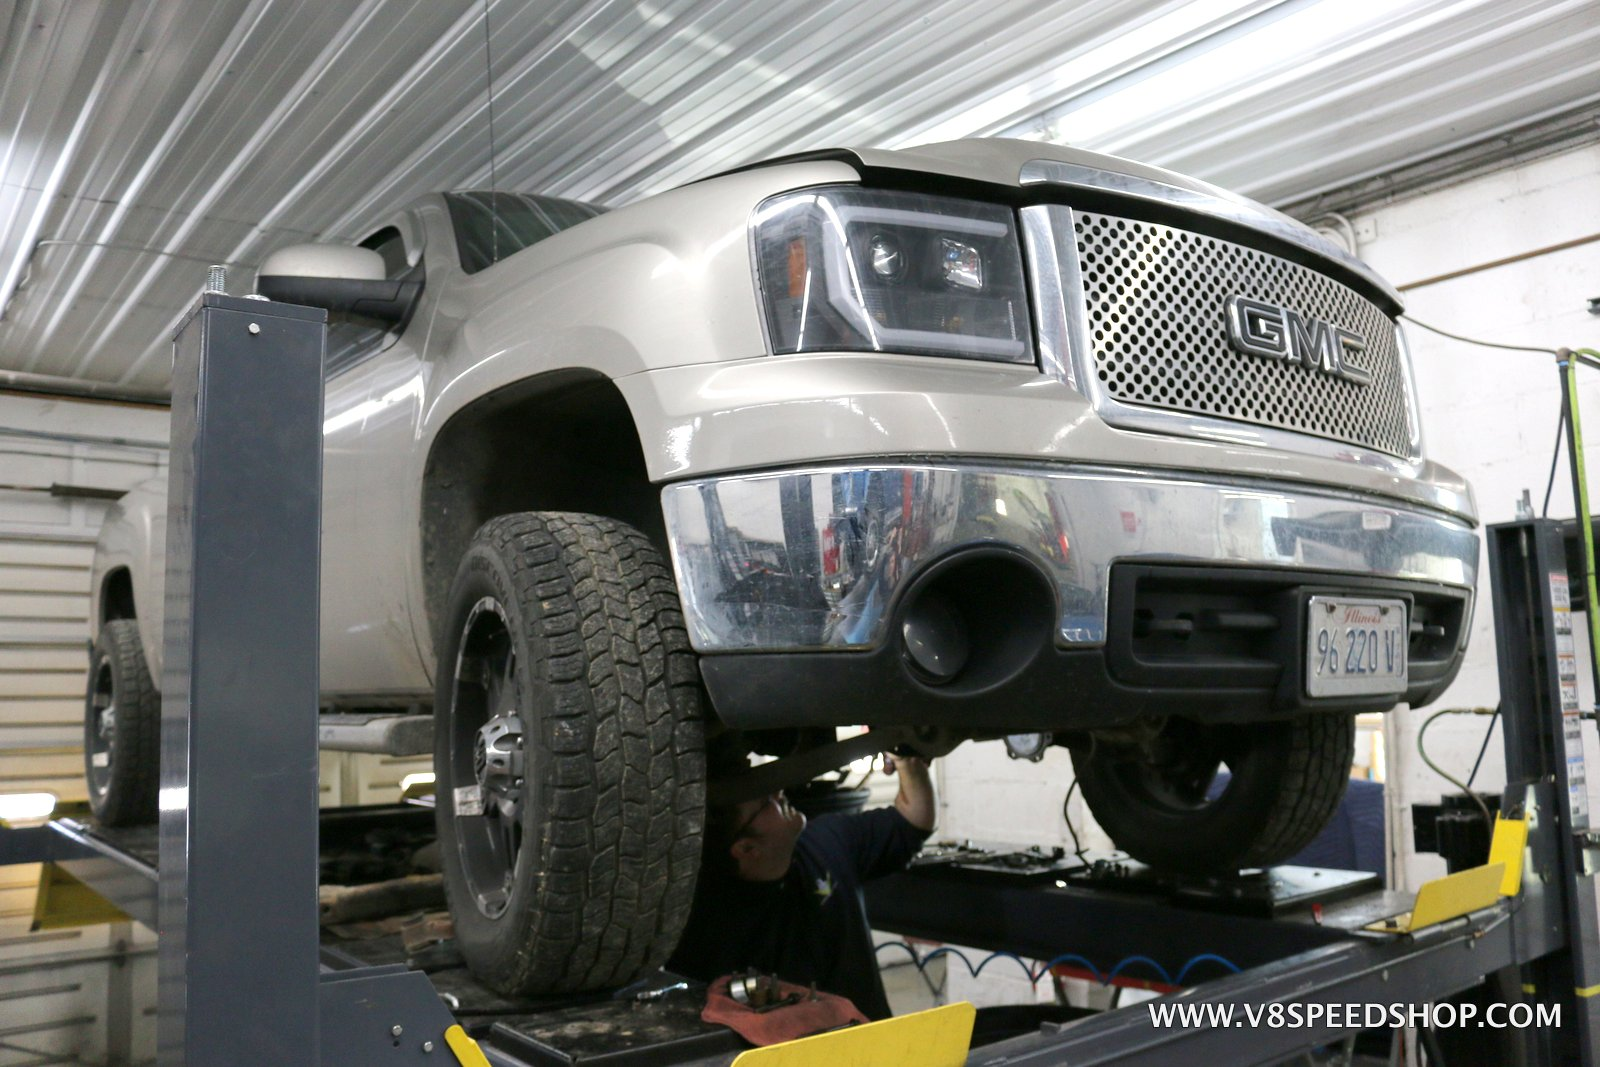 2008 GMC Sierra Z71 Engine and Transmission Upgrades at V8 Speed and Resto Shop